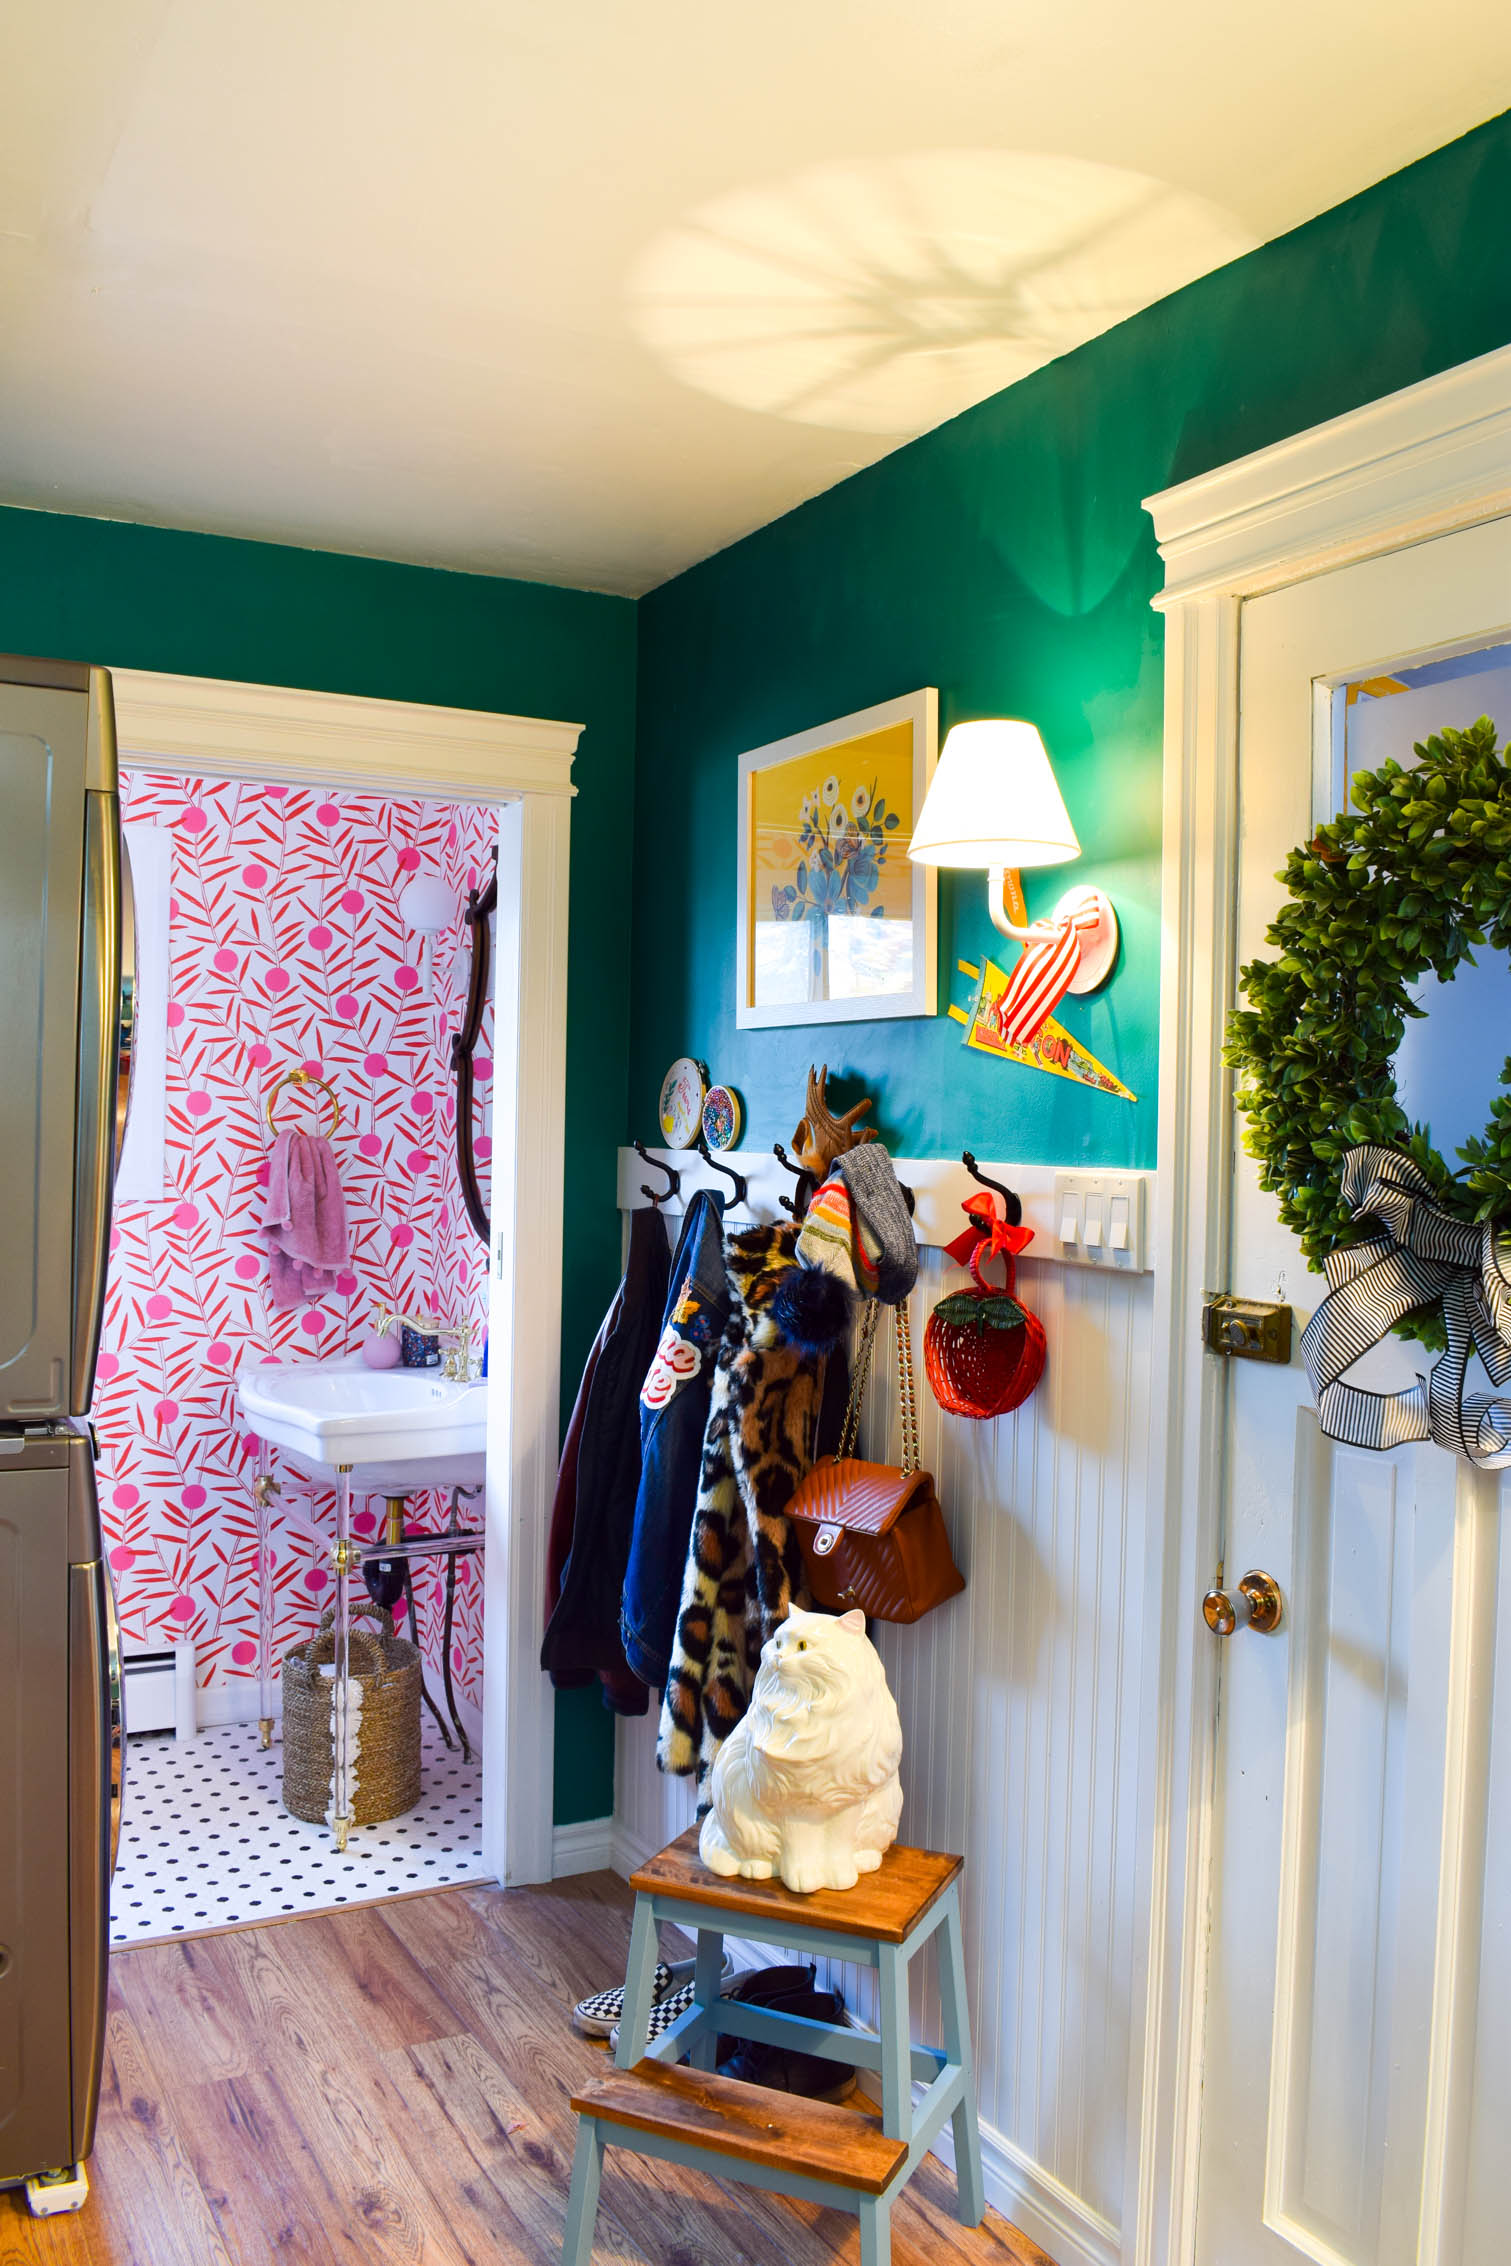 vintage laundry room decor is just what our space was missing! Colourful pennants and baskets, thrifted finds, and more! Come see how we added a retro touch.